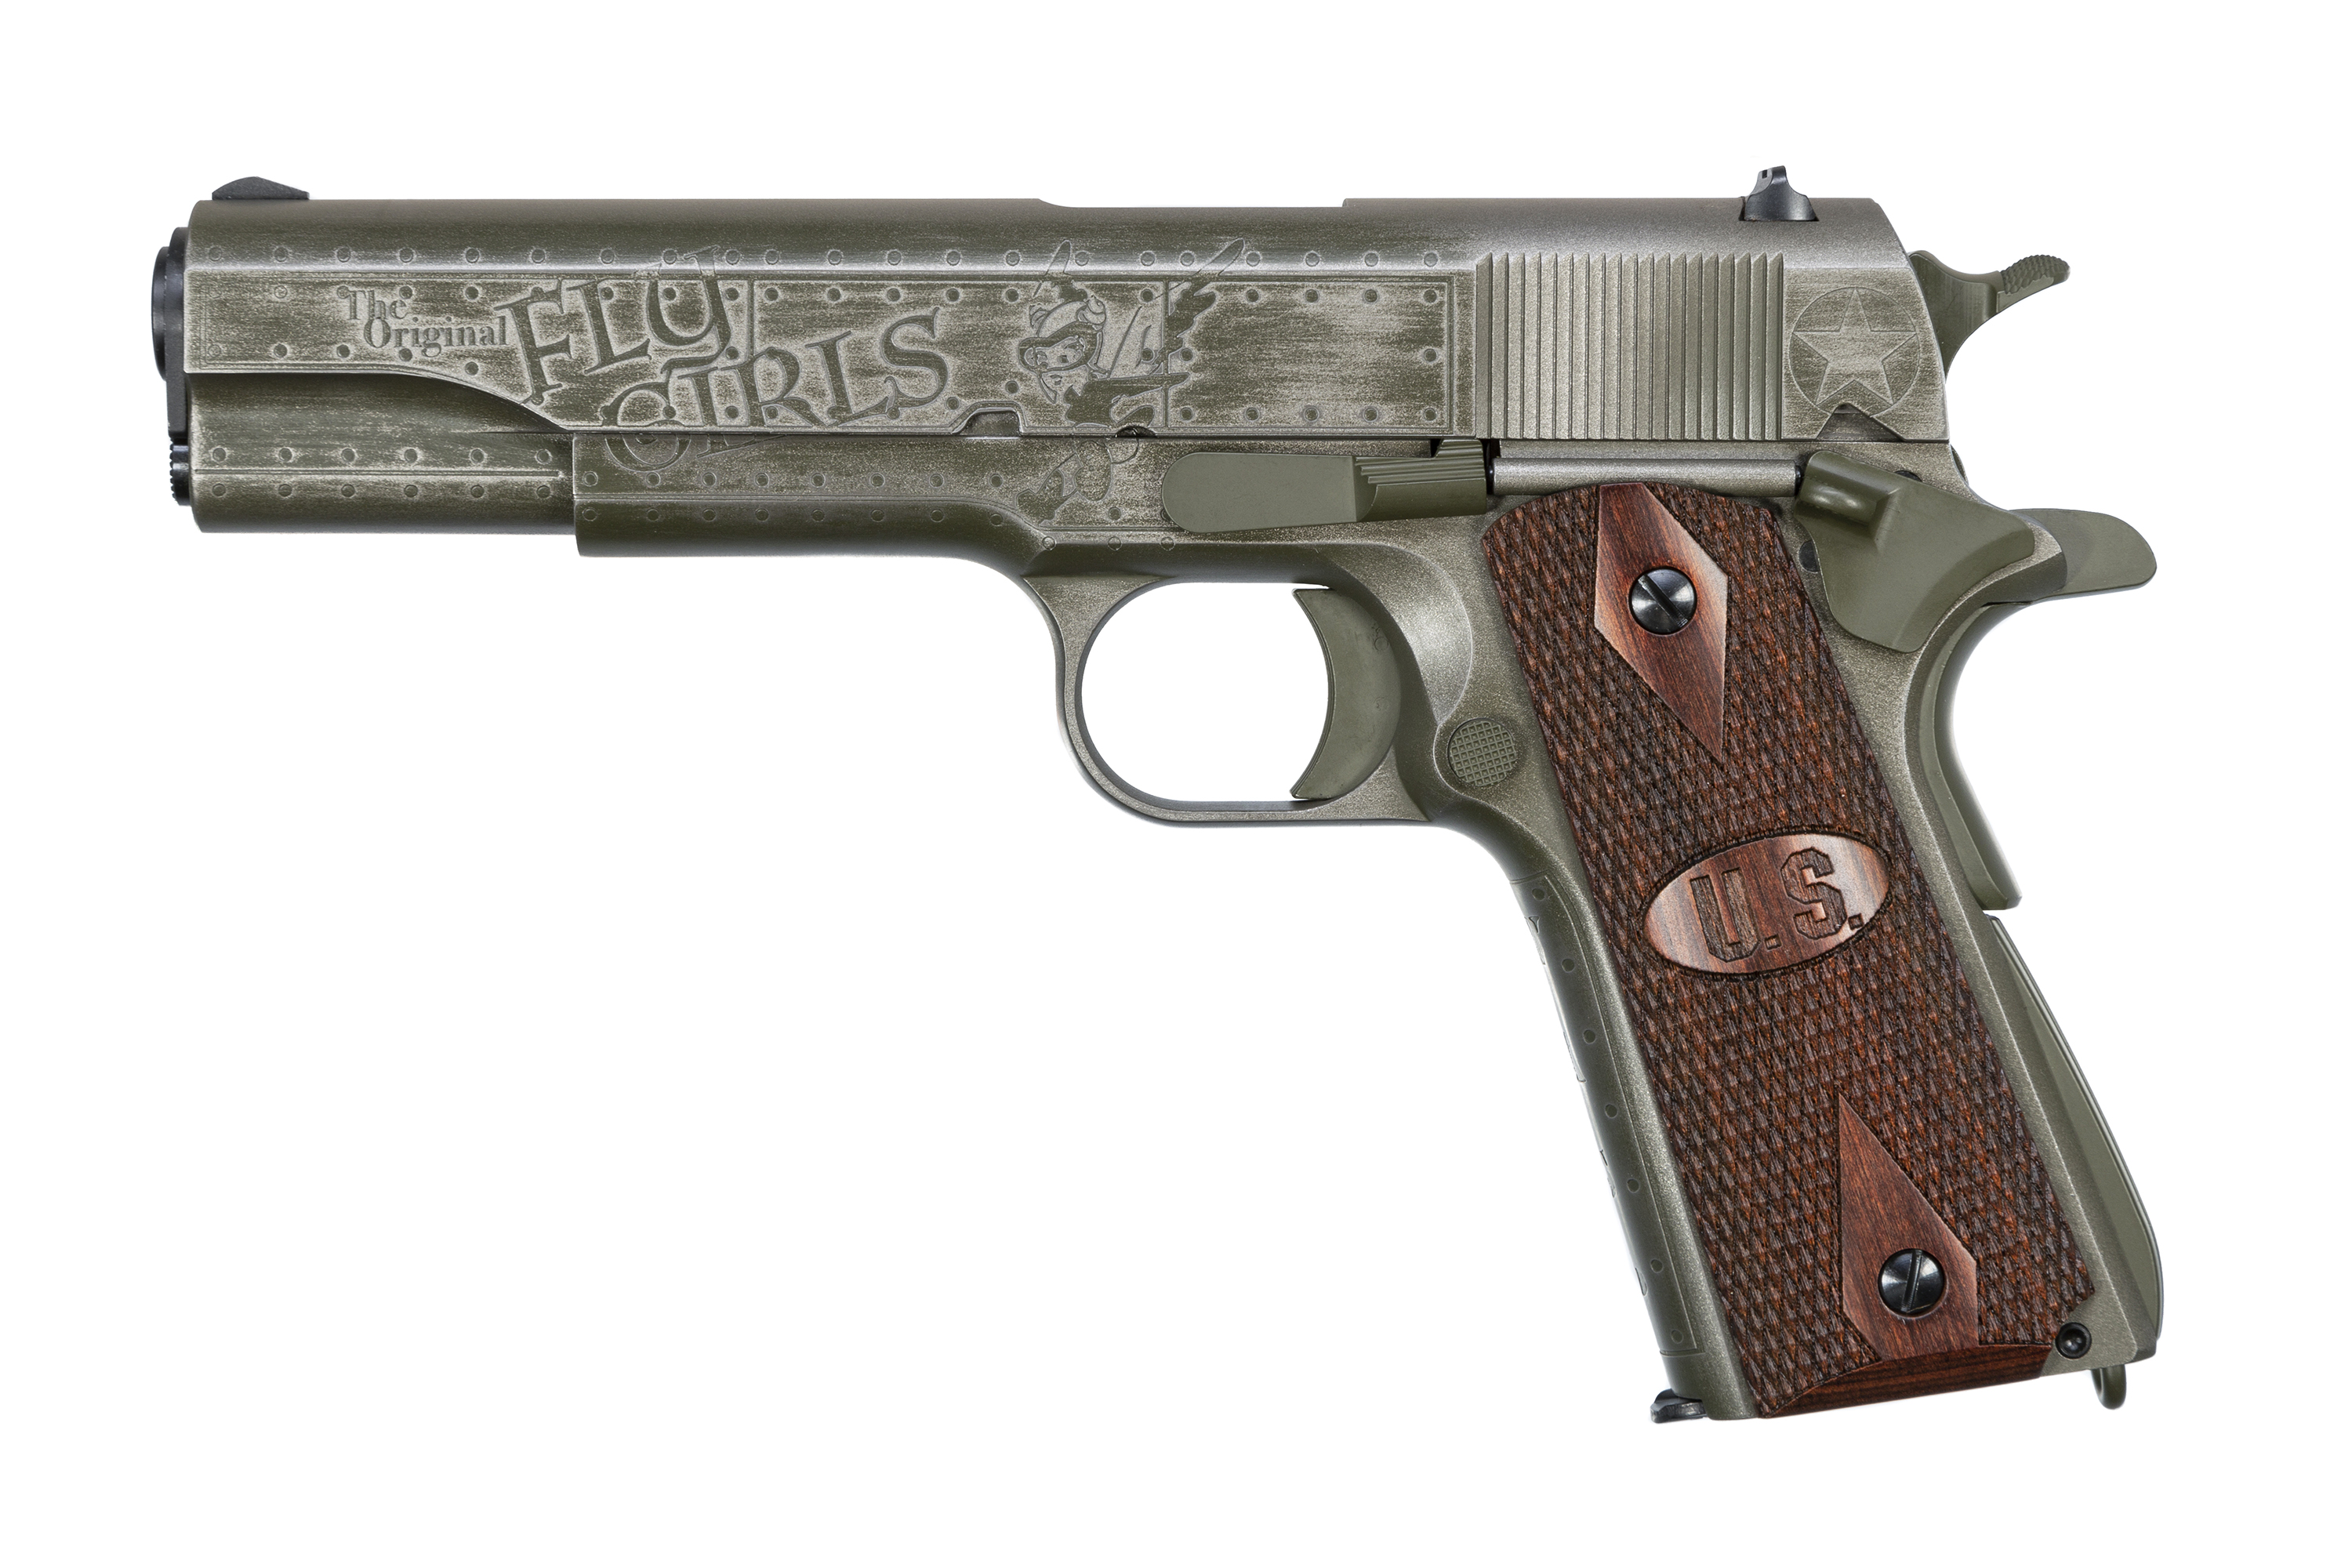 Auto-Ordnance - Thompson 1911A1 Fly Girls Special Edit. 45 ACP